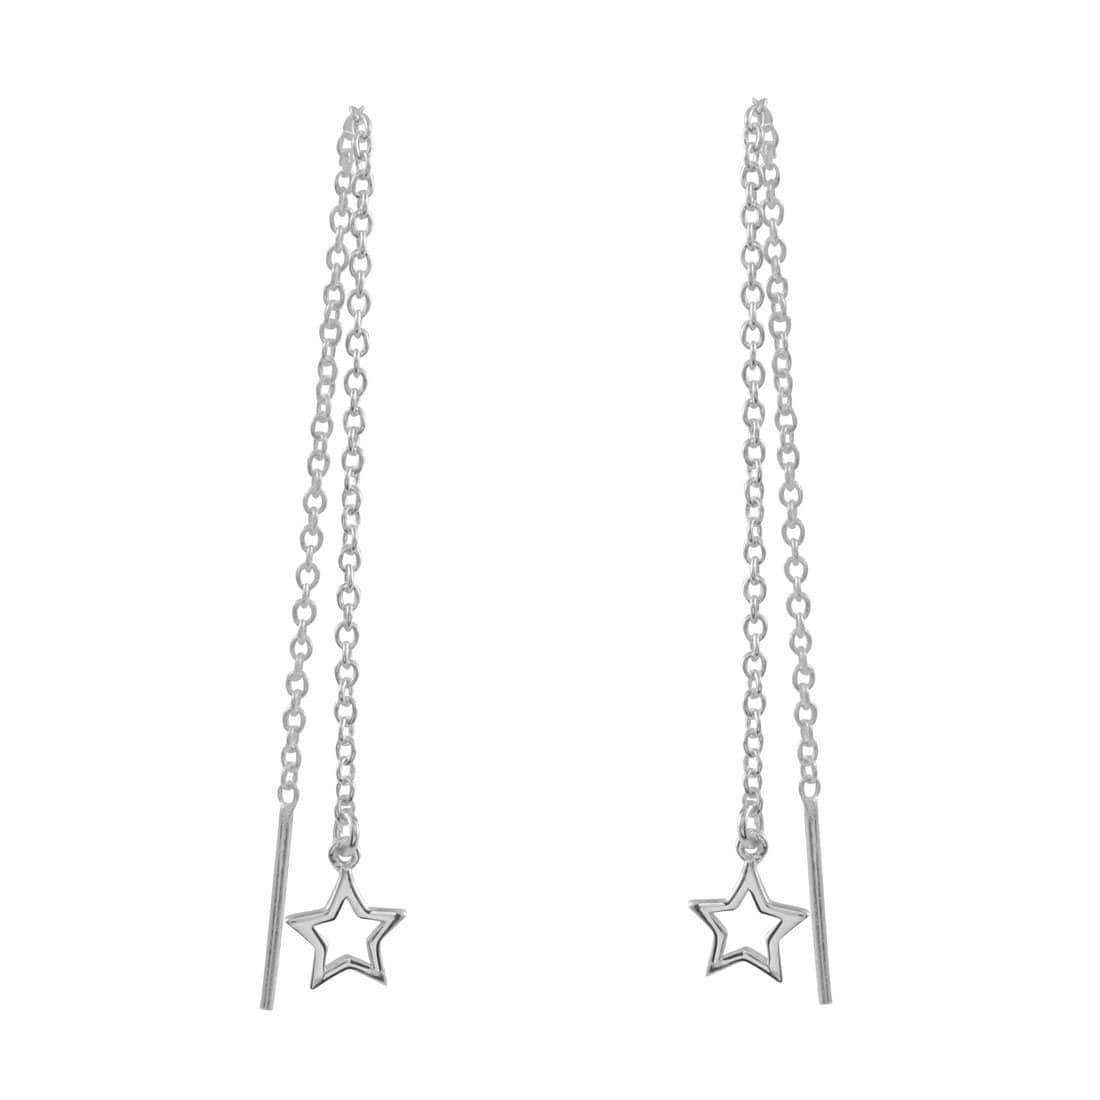 Midsummer Star Earrings Lone Star Threaders